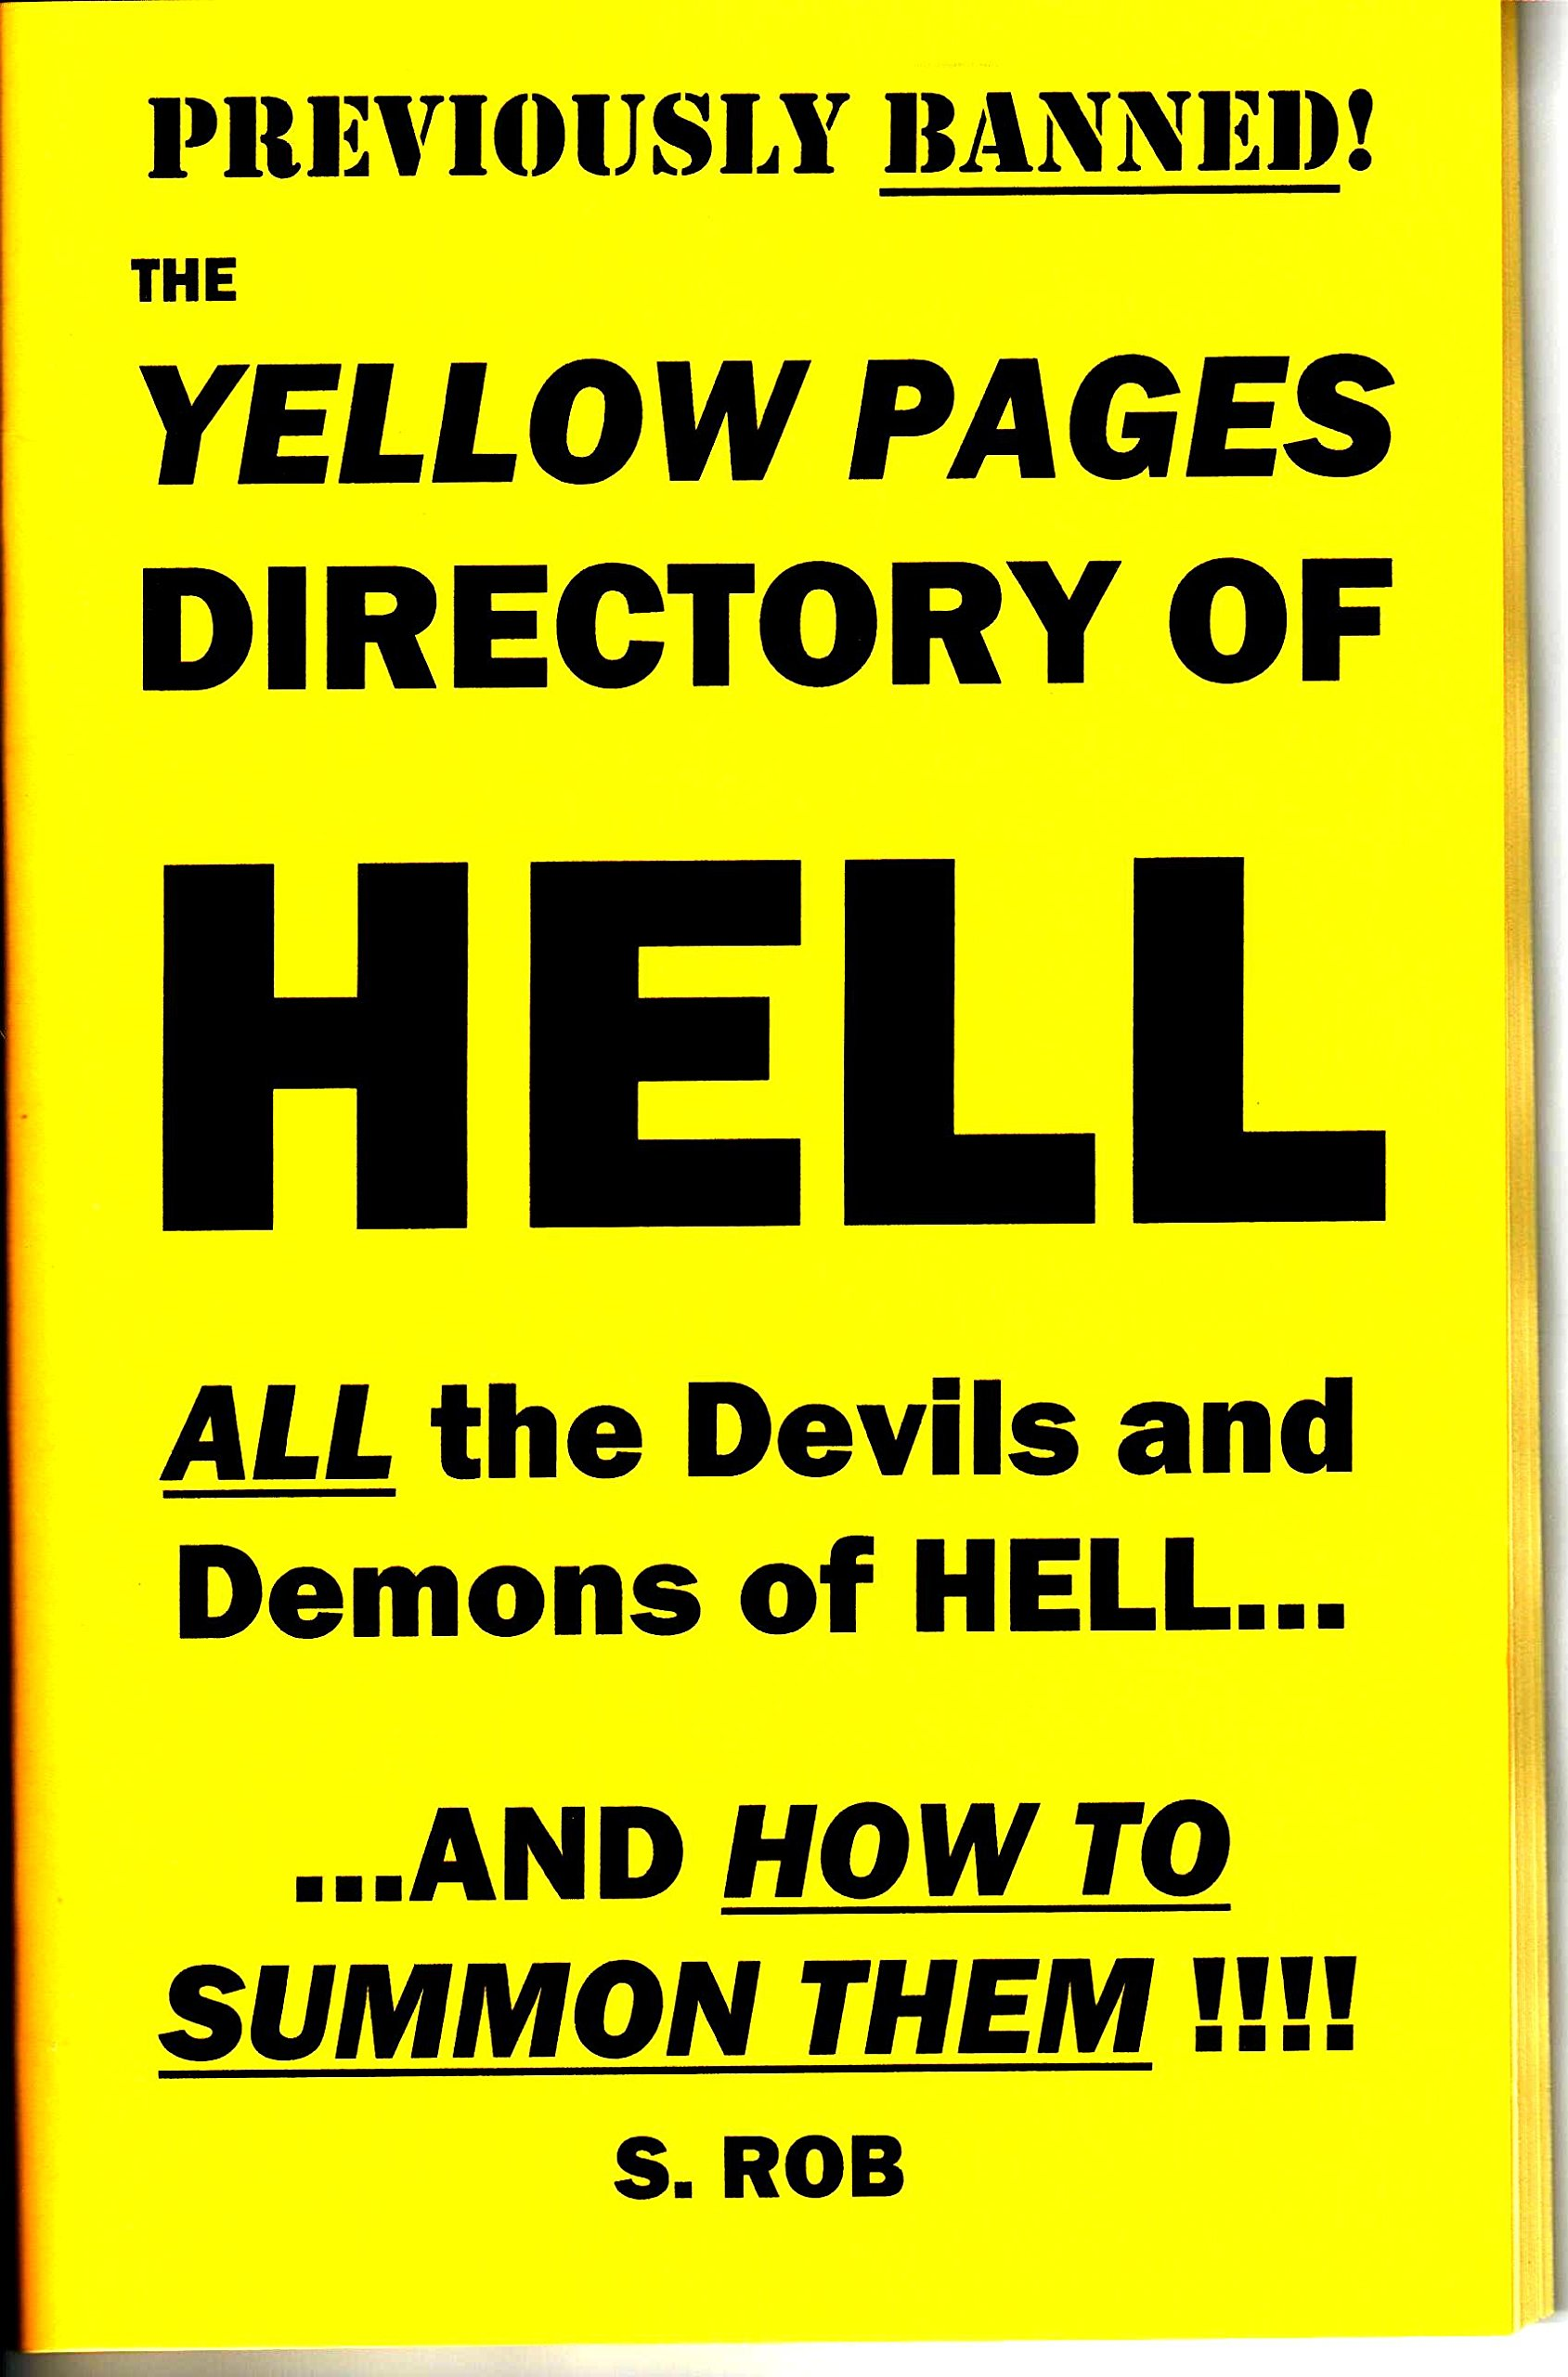 The Yellow Pages directory of Hell: S. Rob: Amazon.com: Books